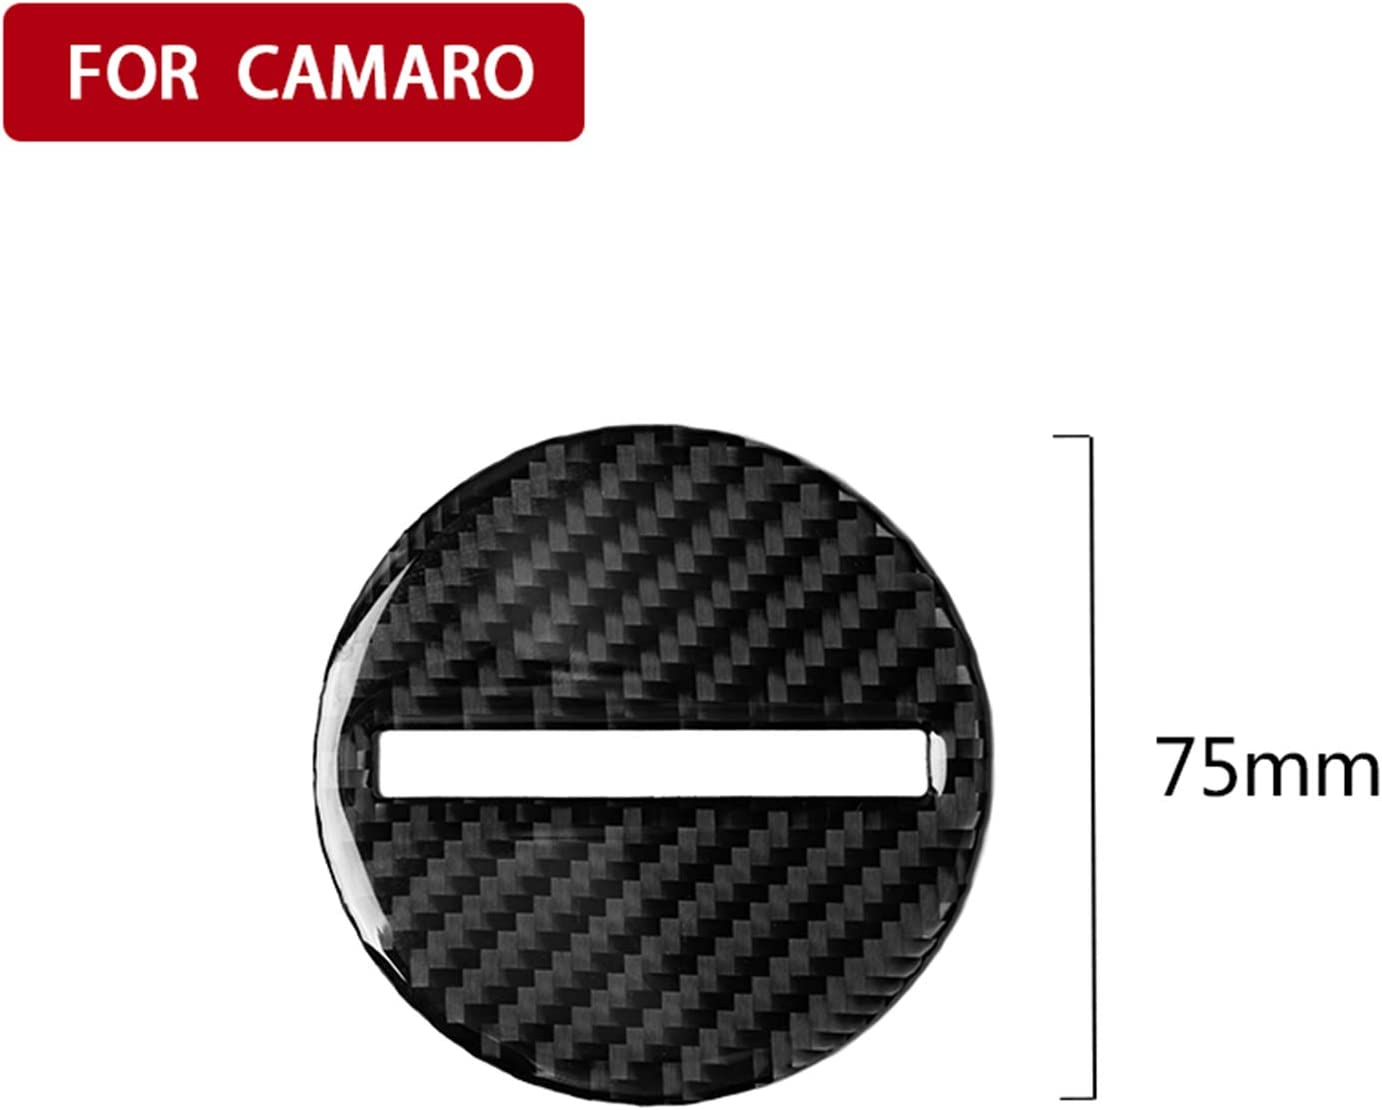 hors Carbon Fiber Interior Instrument Dashboard Steering Wheel Frame Panel Decal Cover Trim for Bumblebee Chevrolet Camaro SS RS LT ZL1 2017+